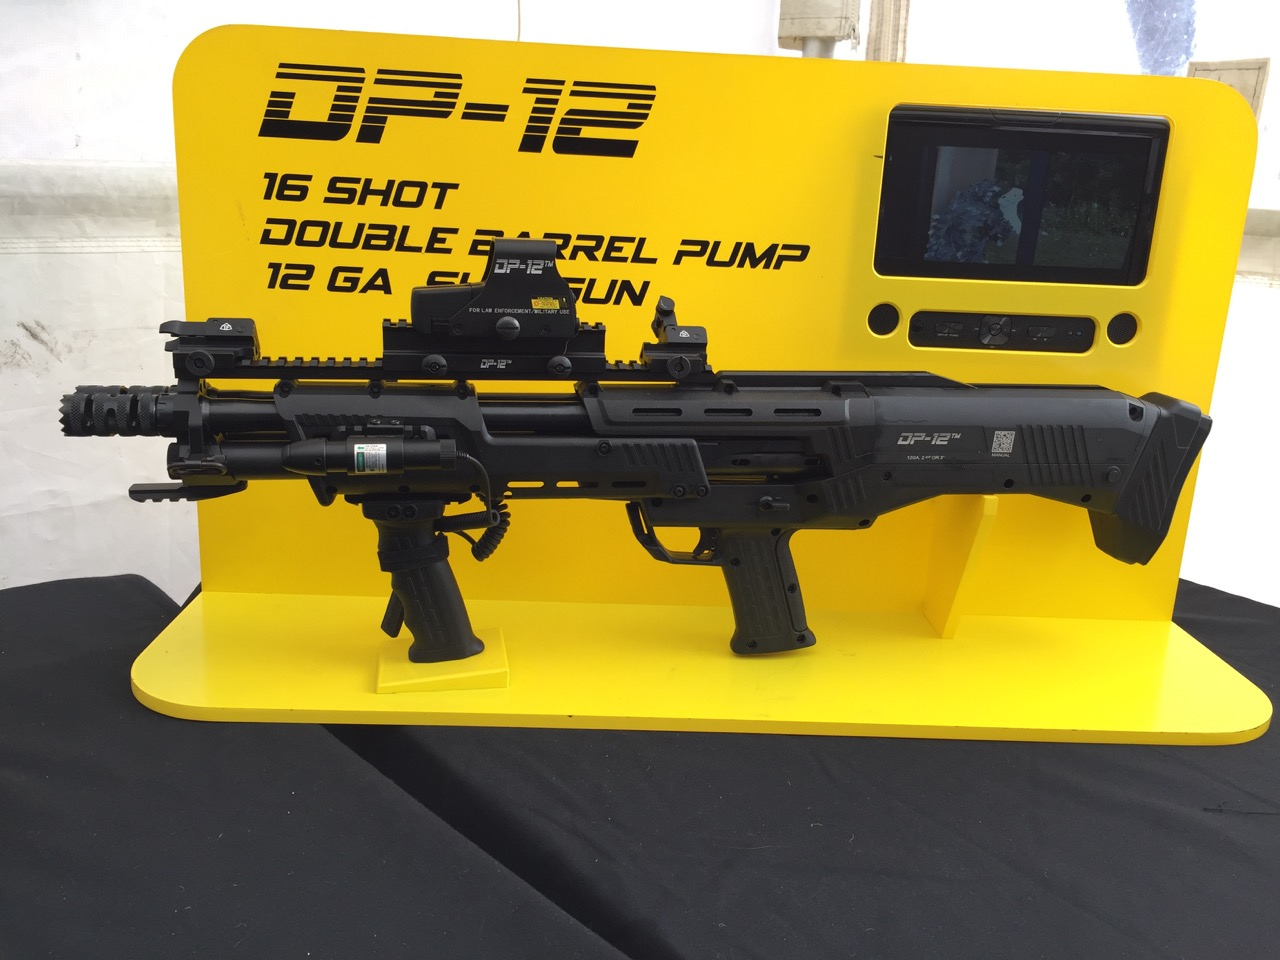 SHOT 2016 Range Day: Hands-on With the DP-12 Bullpup Shotgun